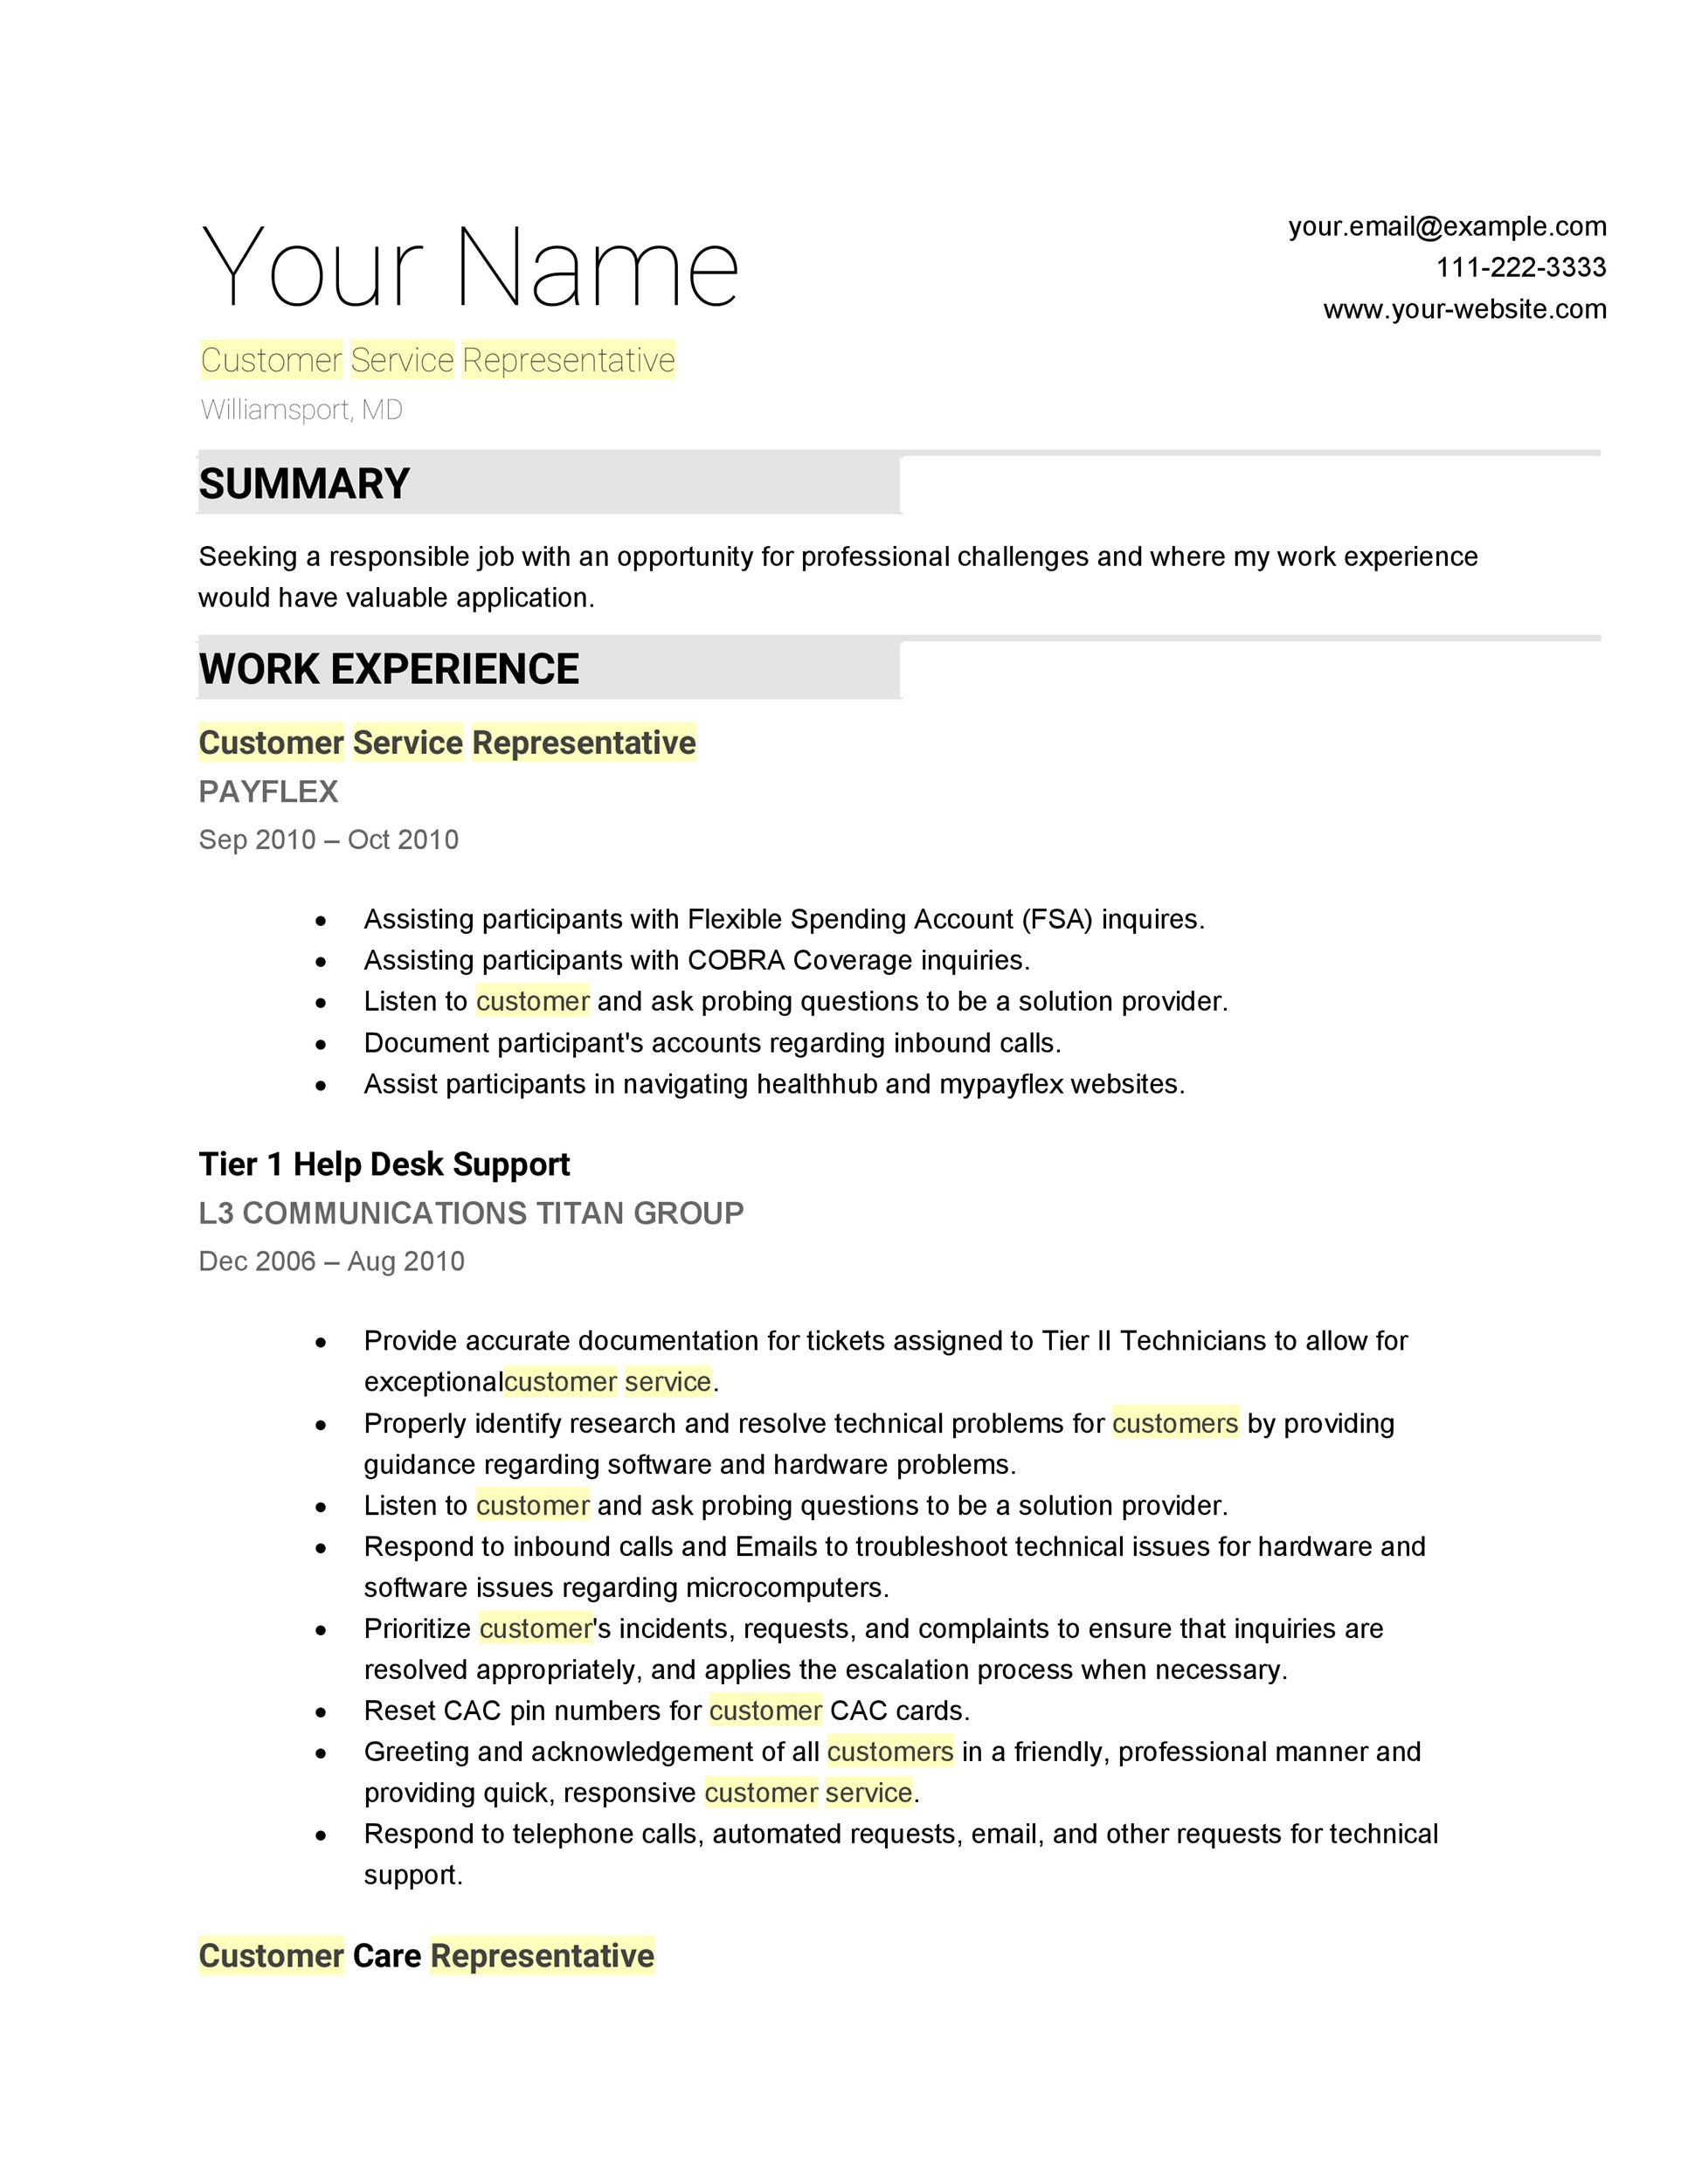 30+ Customer Service Resume Examples - Template Lab - free resumes examples